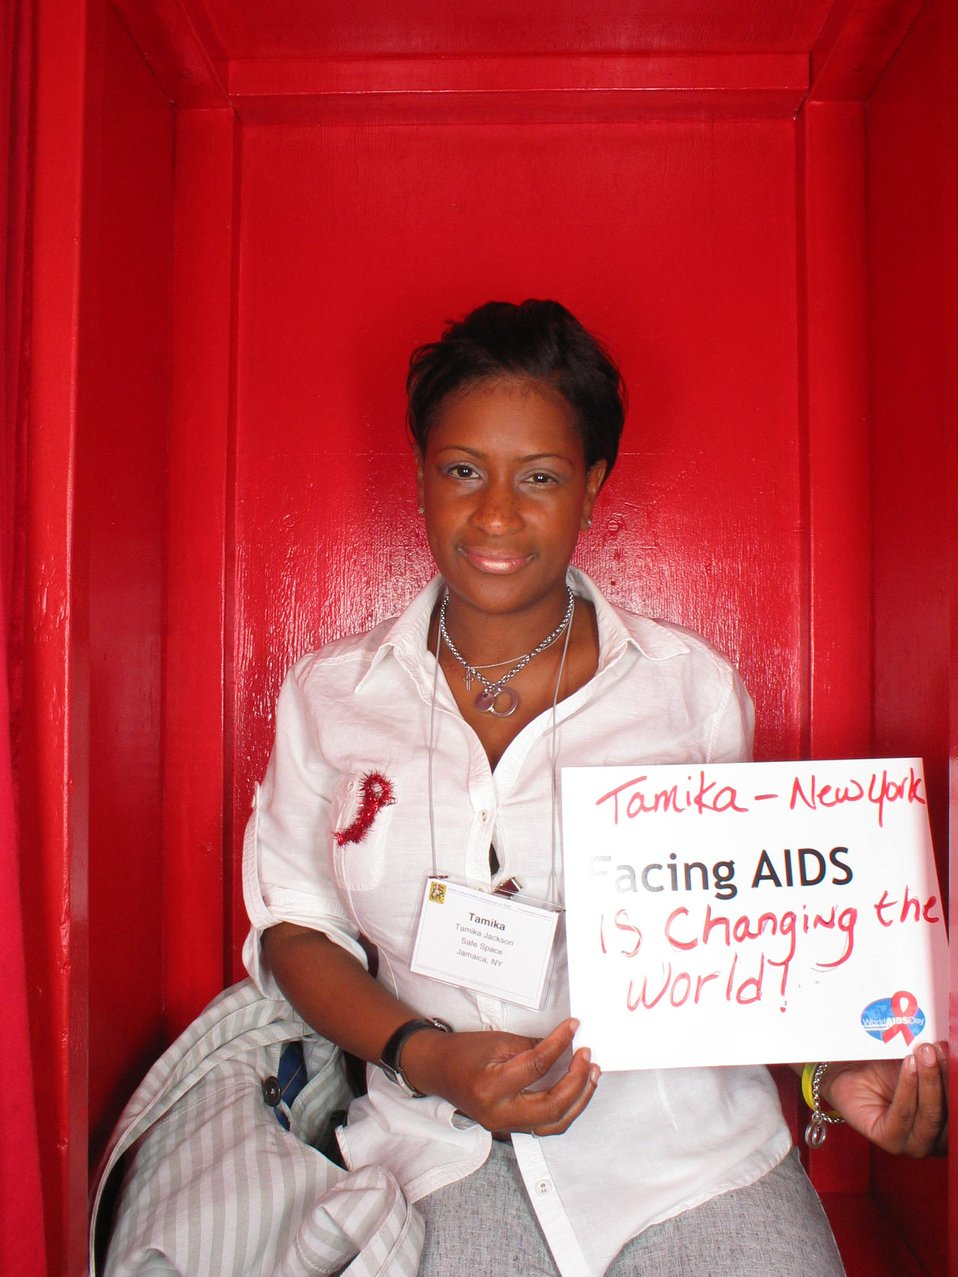 Facing AIDS is changing the world!